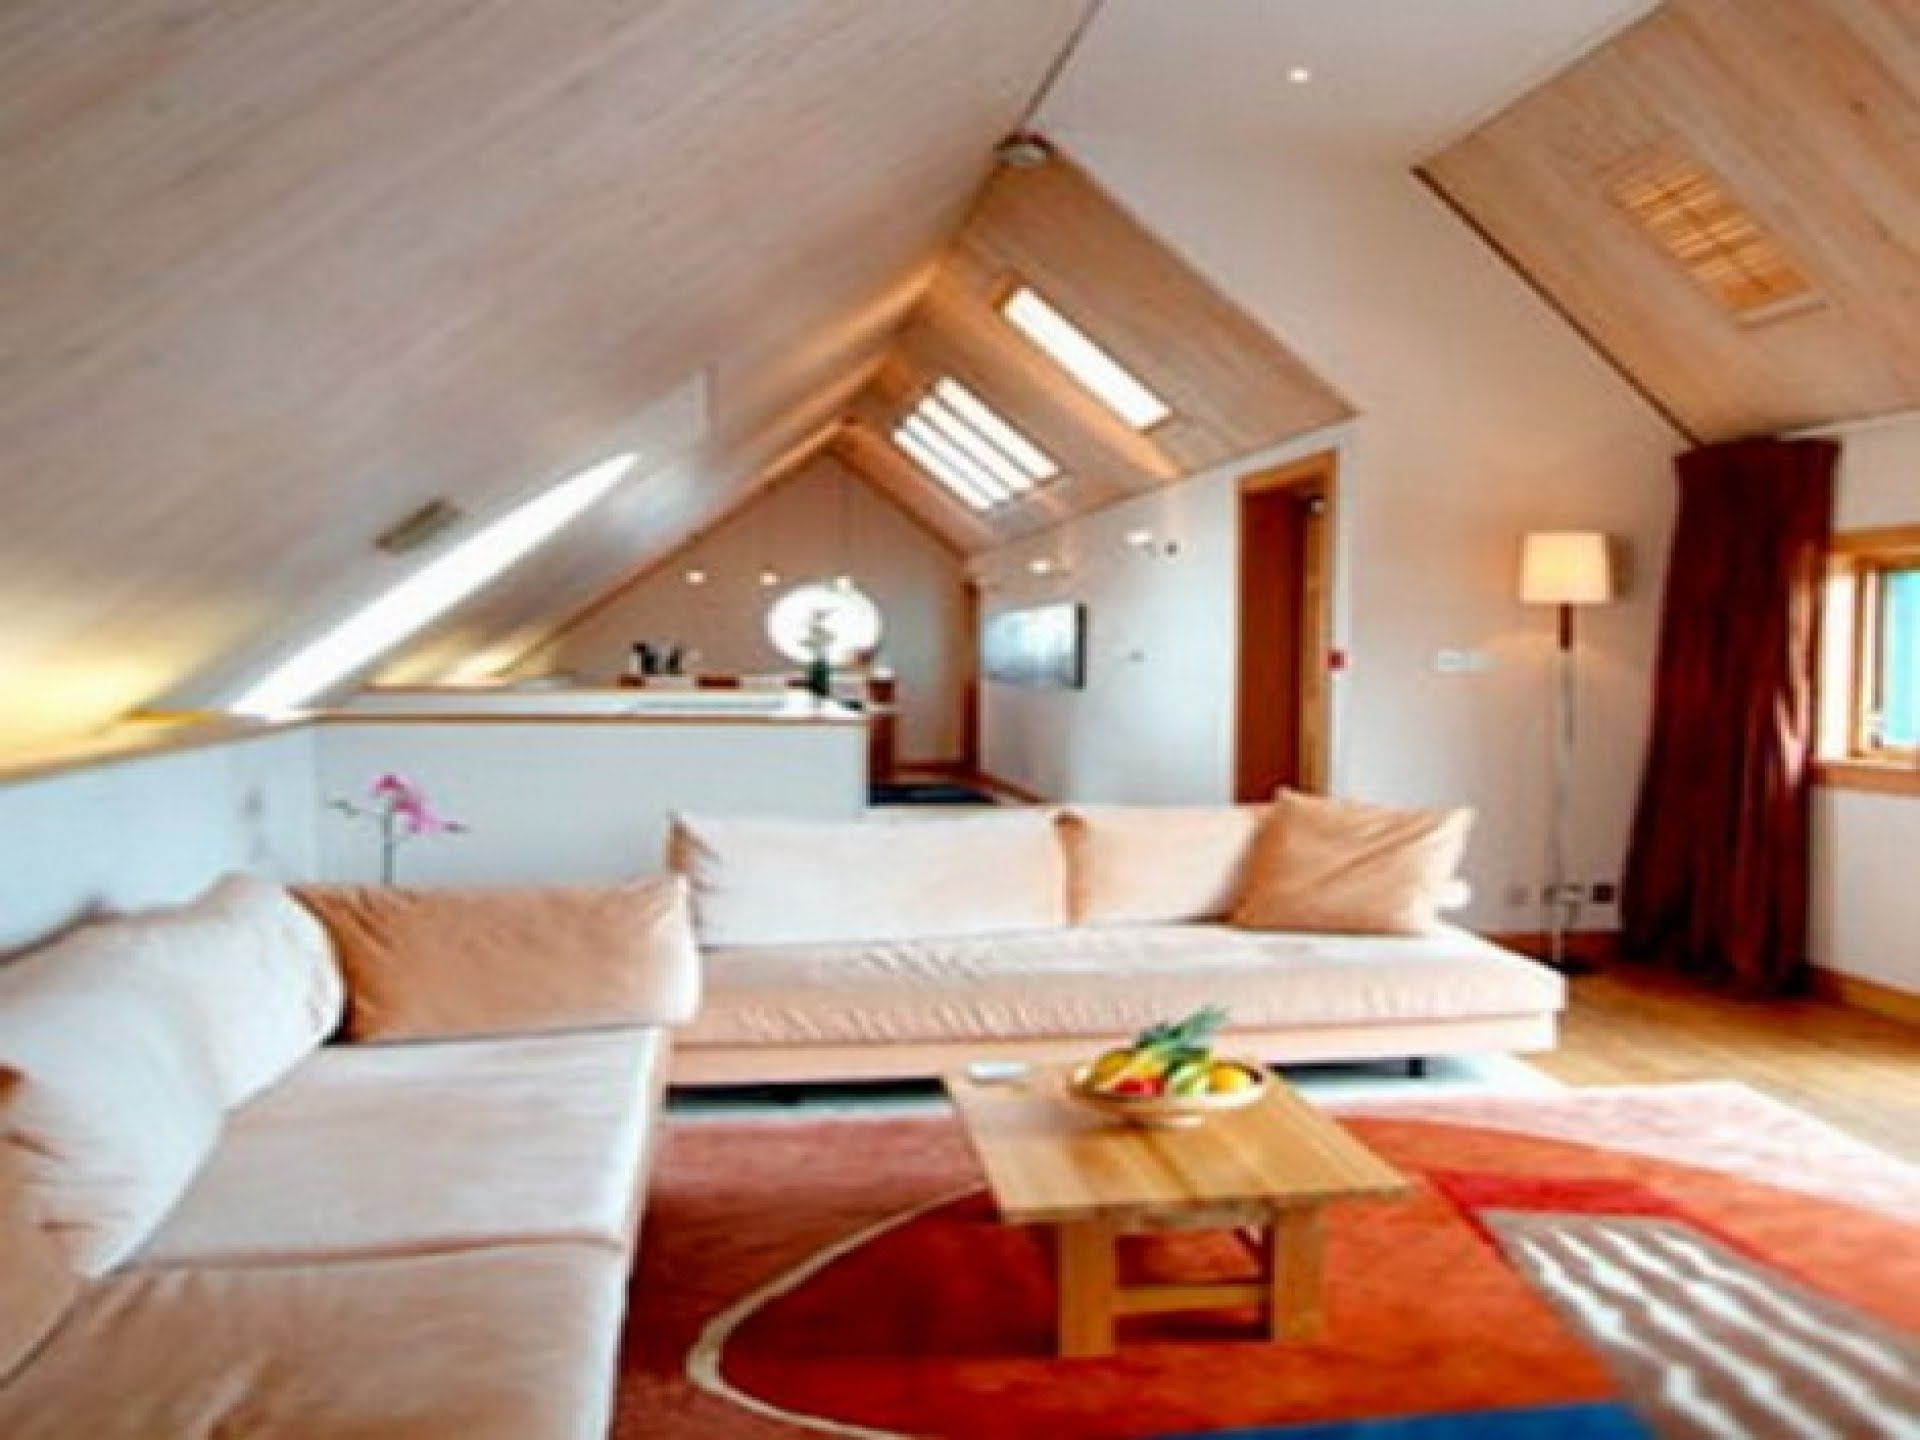 Small Attic Space Ideas Attic Design Ideas Small Space Ideas